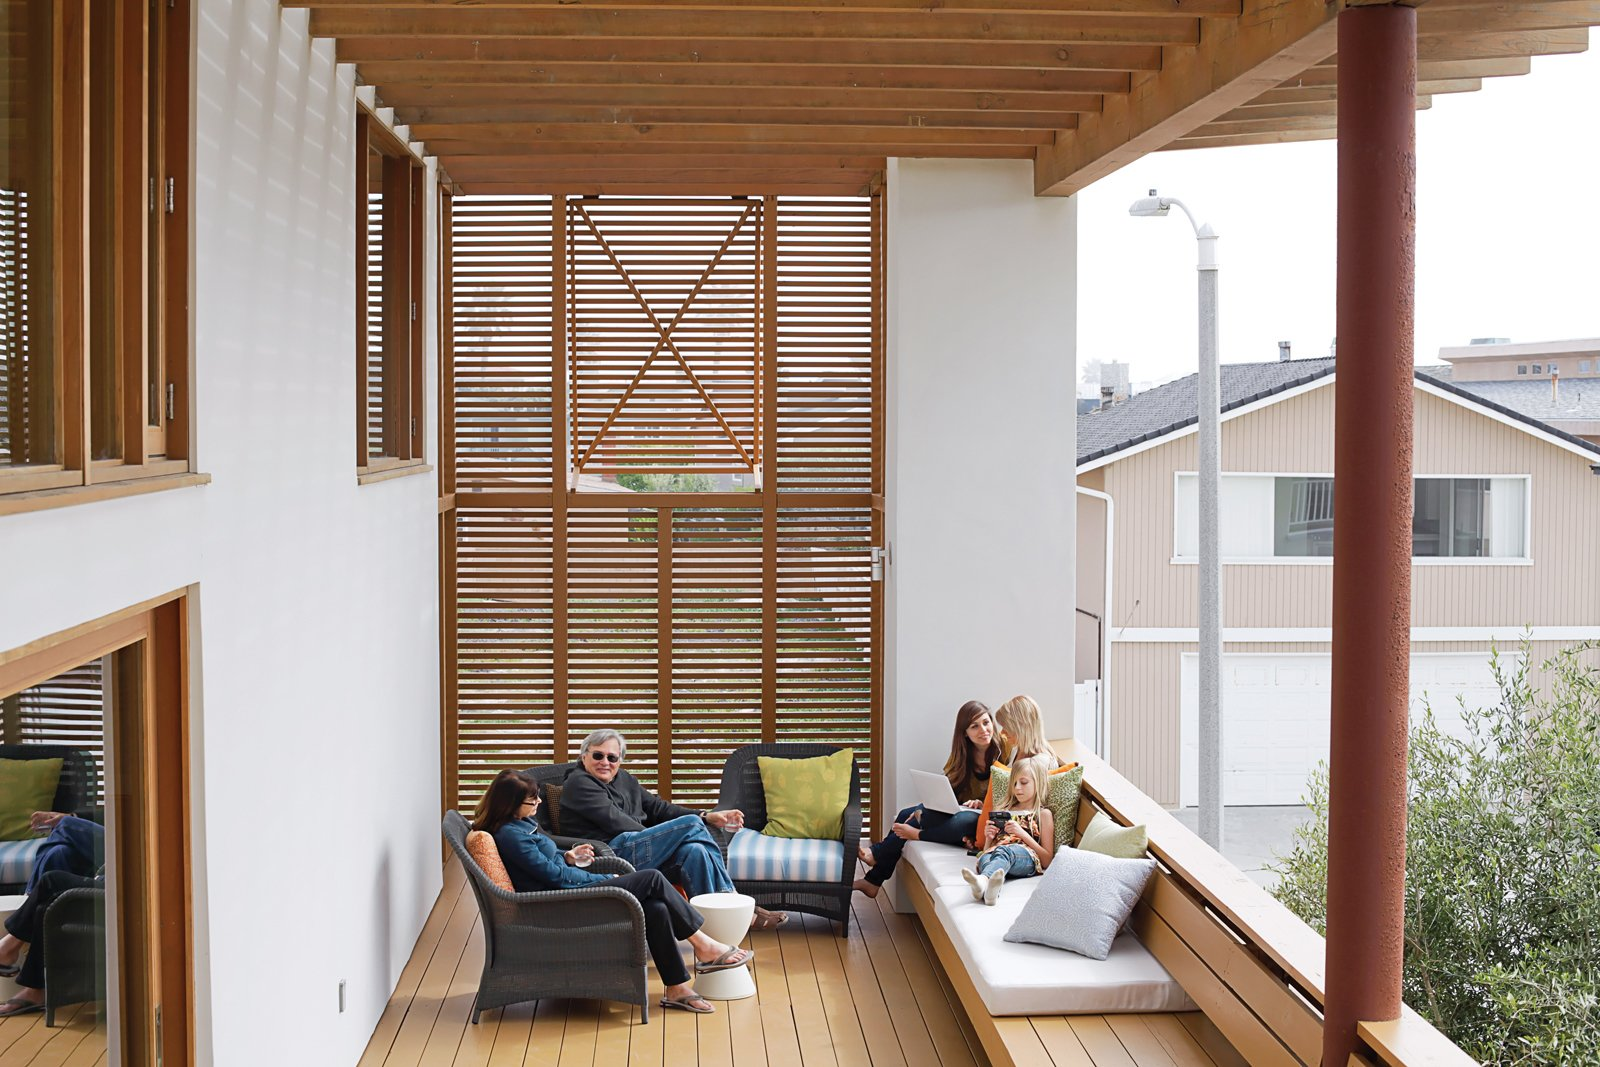 Outdoor, Small Patio, Porch, Deck, and Wood Patio, Porch, Deck Cedar louvers increase privacy and shade on the second-floor deck, where Carole and Duane relax with granddaughters Natalie and Allison and their friend Katherine.  Photos from Coast Docs